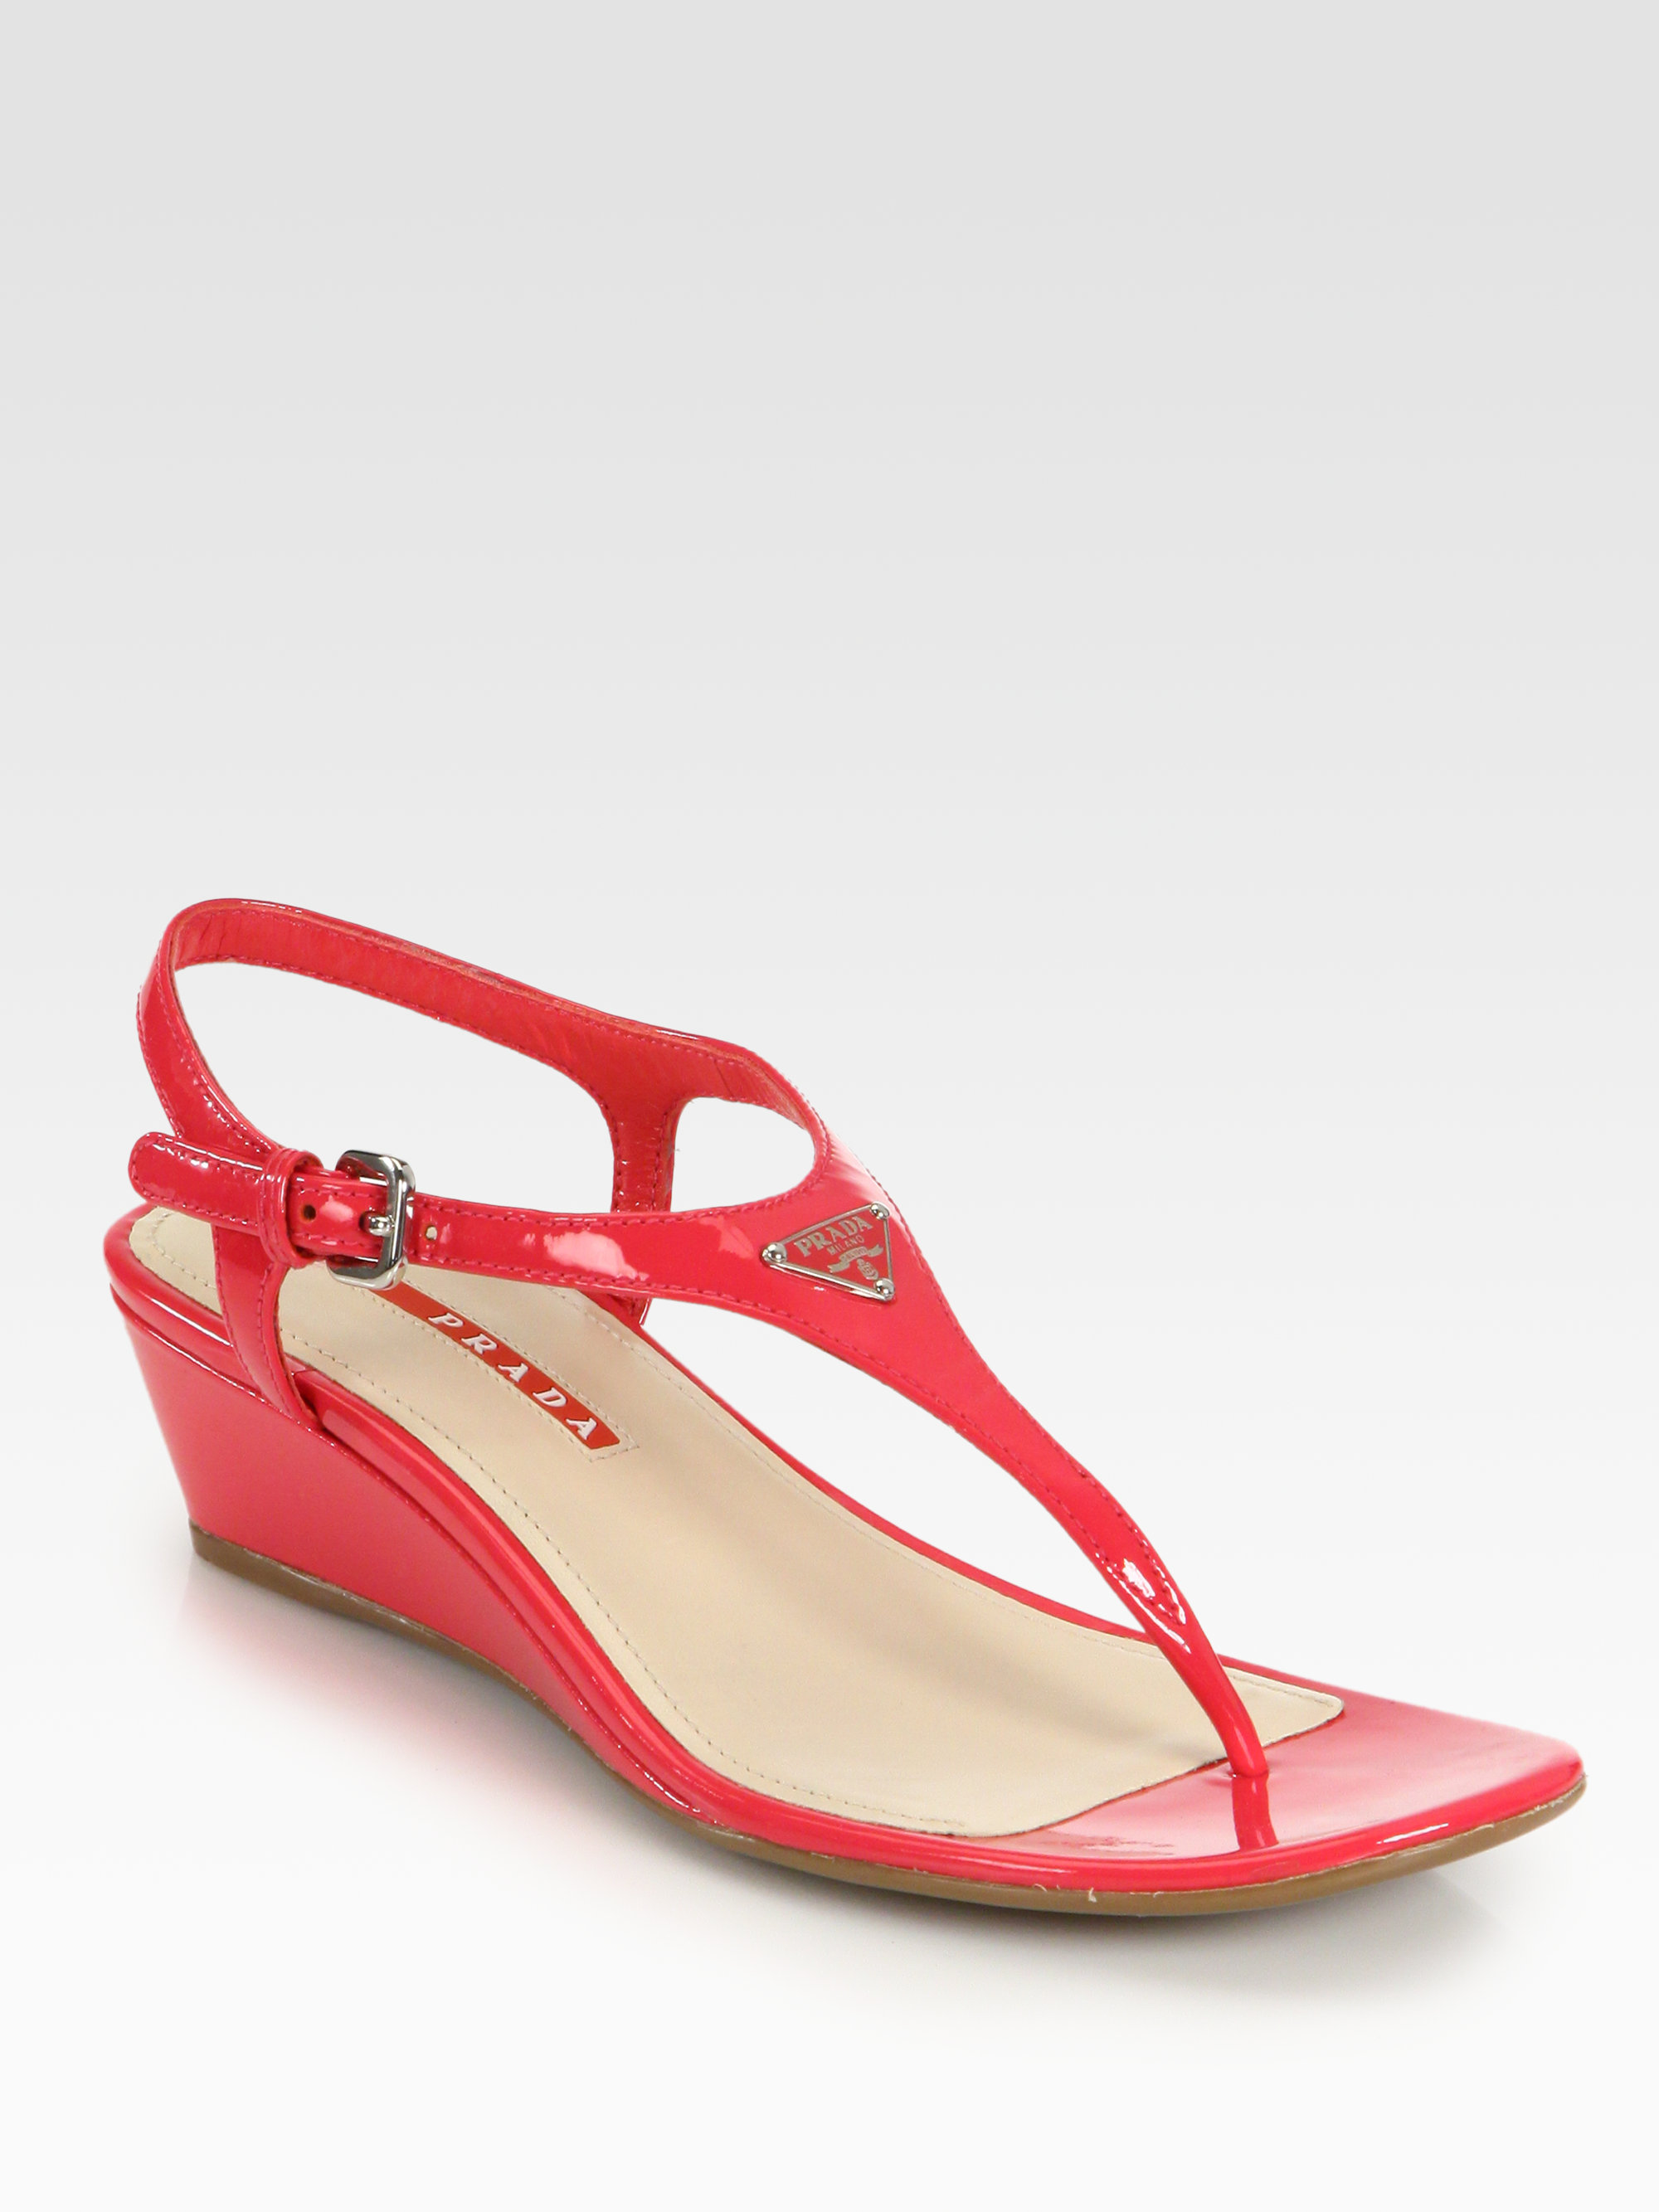 331617736c0f Lyst - Prada Patent Leather Thong Wedge Sandals in Red